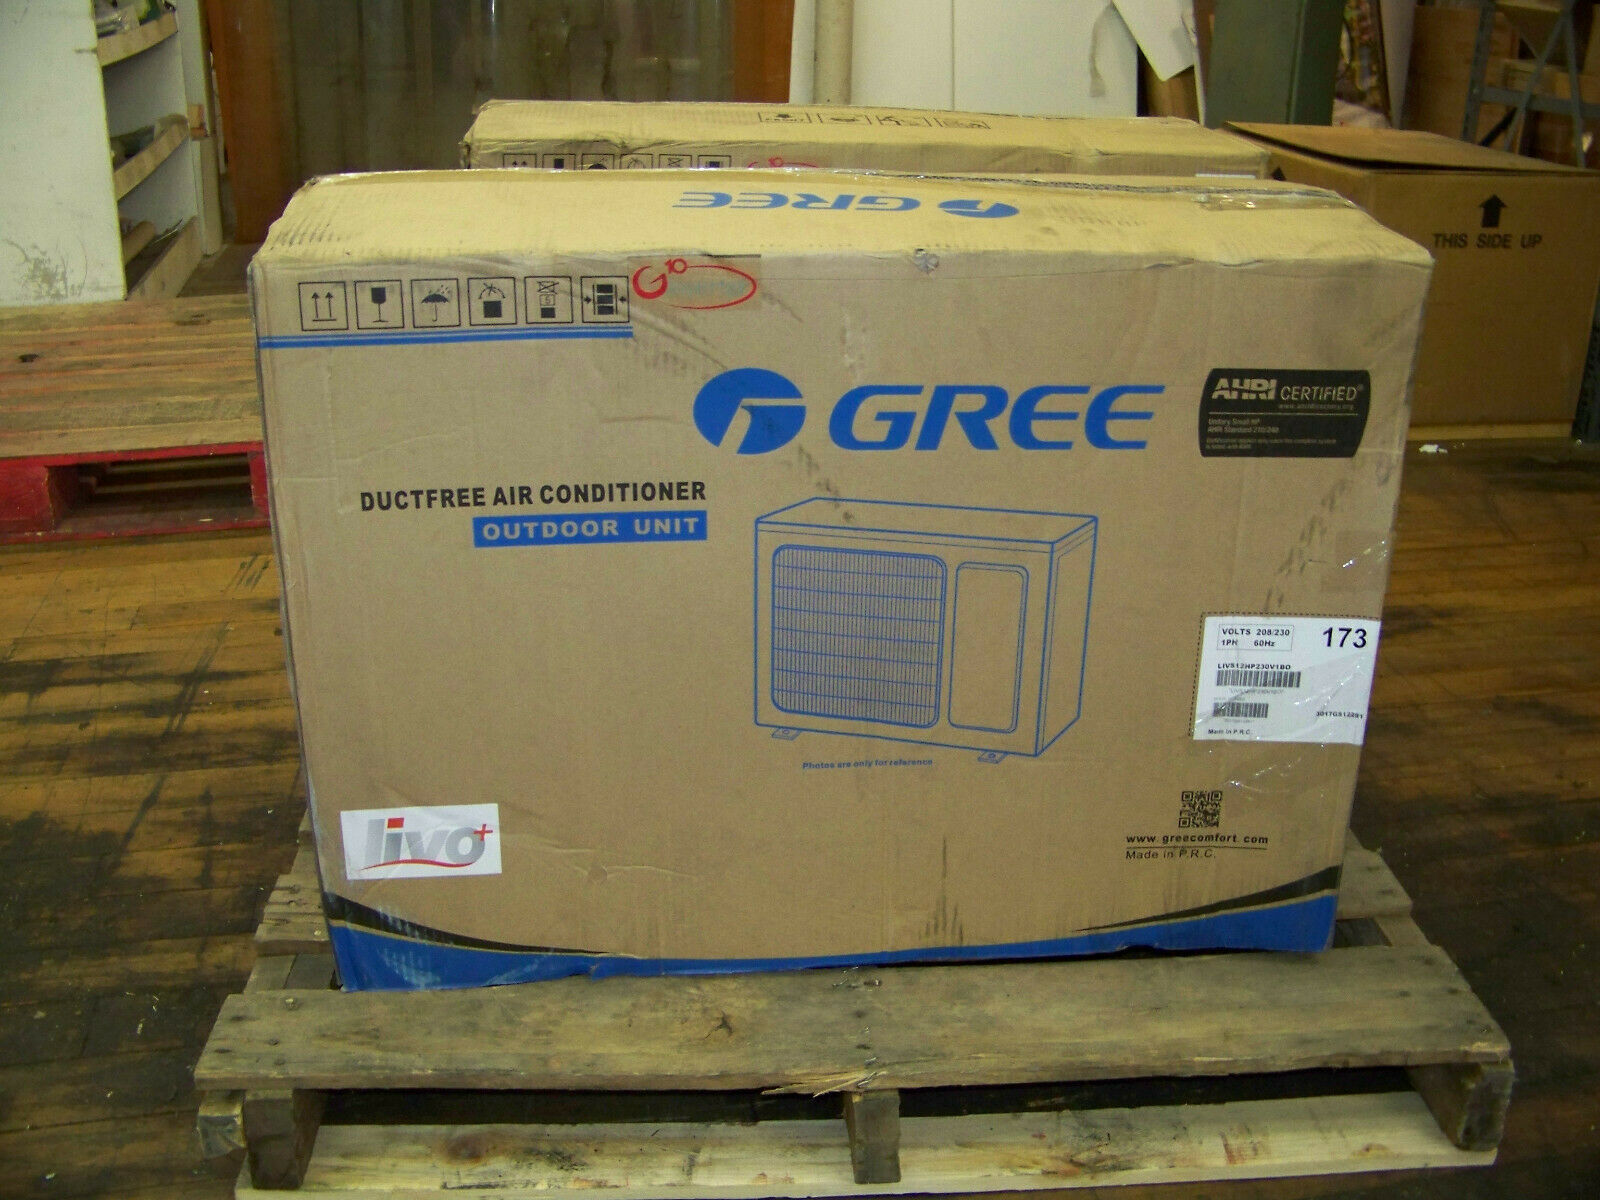 Gree Inverter Ductfree Air Conditioner Outdoor Unit 208/230V